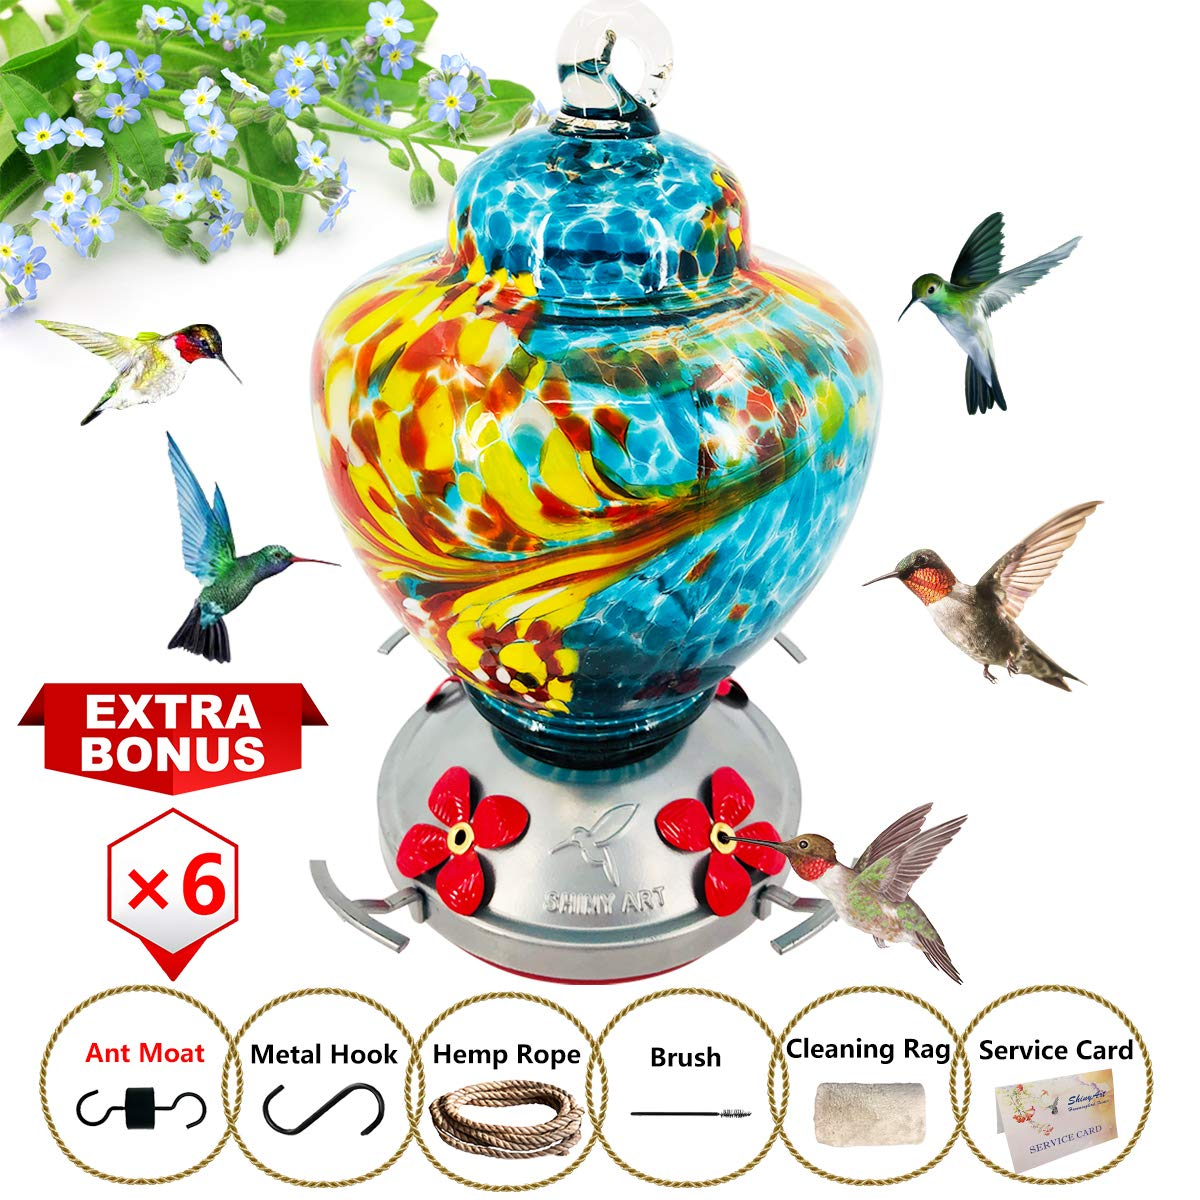 ShinyArt Hummingbird Feeder - Hand Blown Glass - Blue - 38 Fluid Ounces Nectar Capacity Include Ant Moat, Metal Hook, Hemp Rope, Brush, Cleaning Rag and Service Card